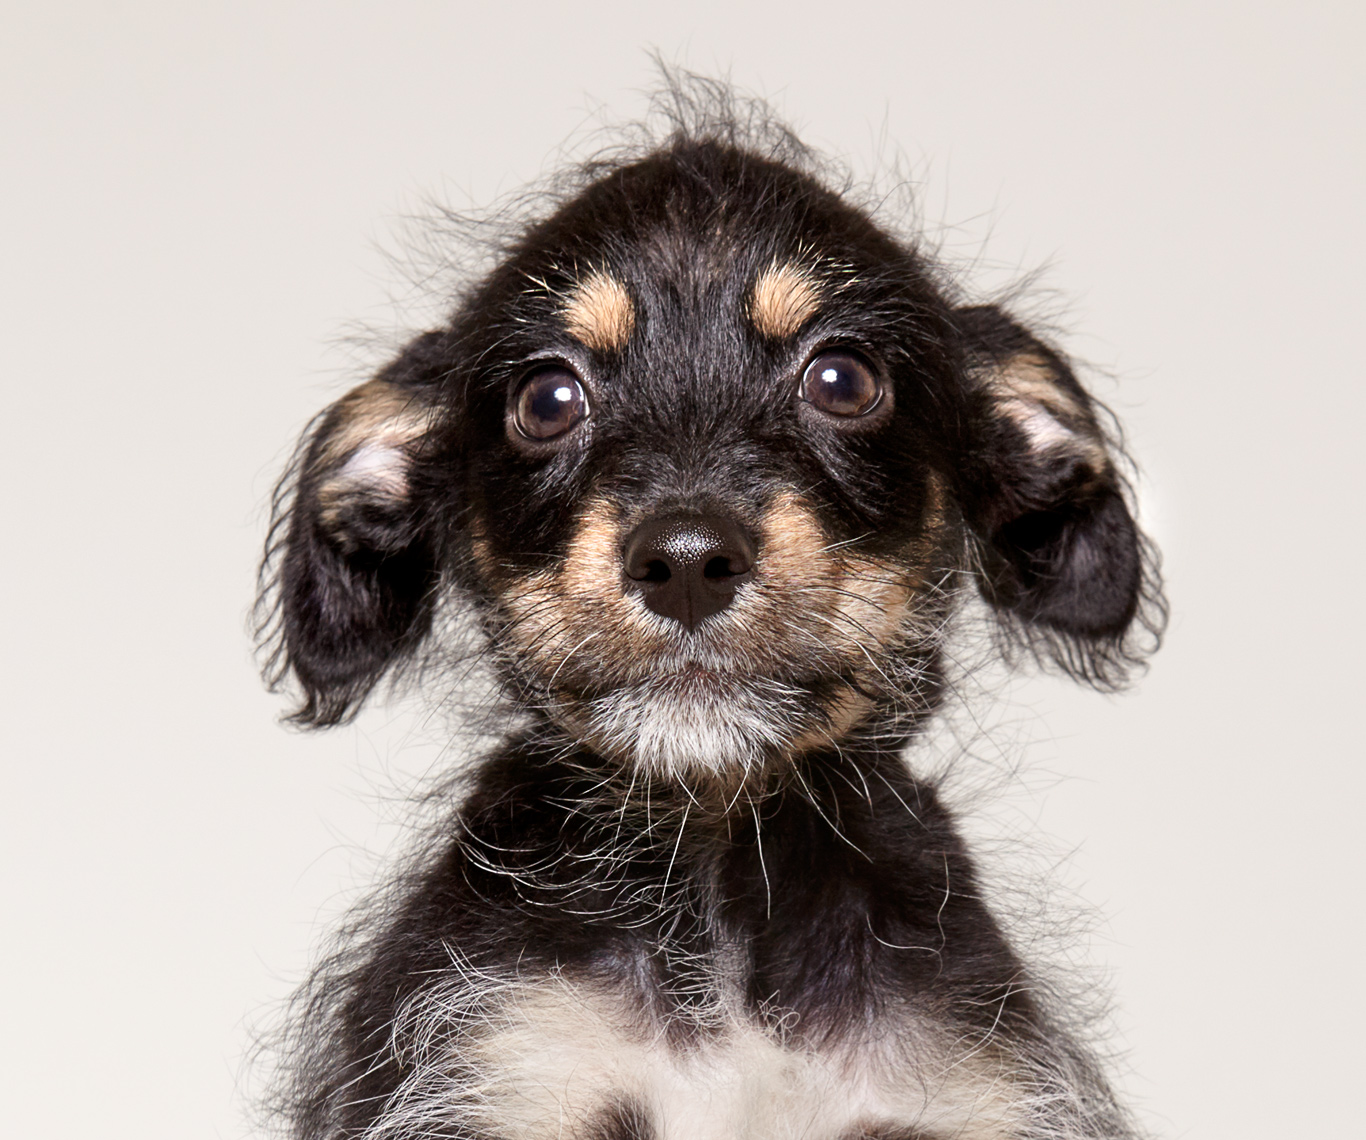 Puppy portrait with scruffy hair